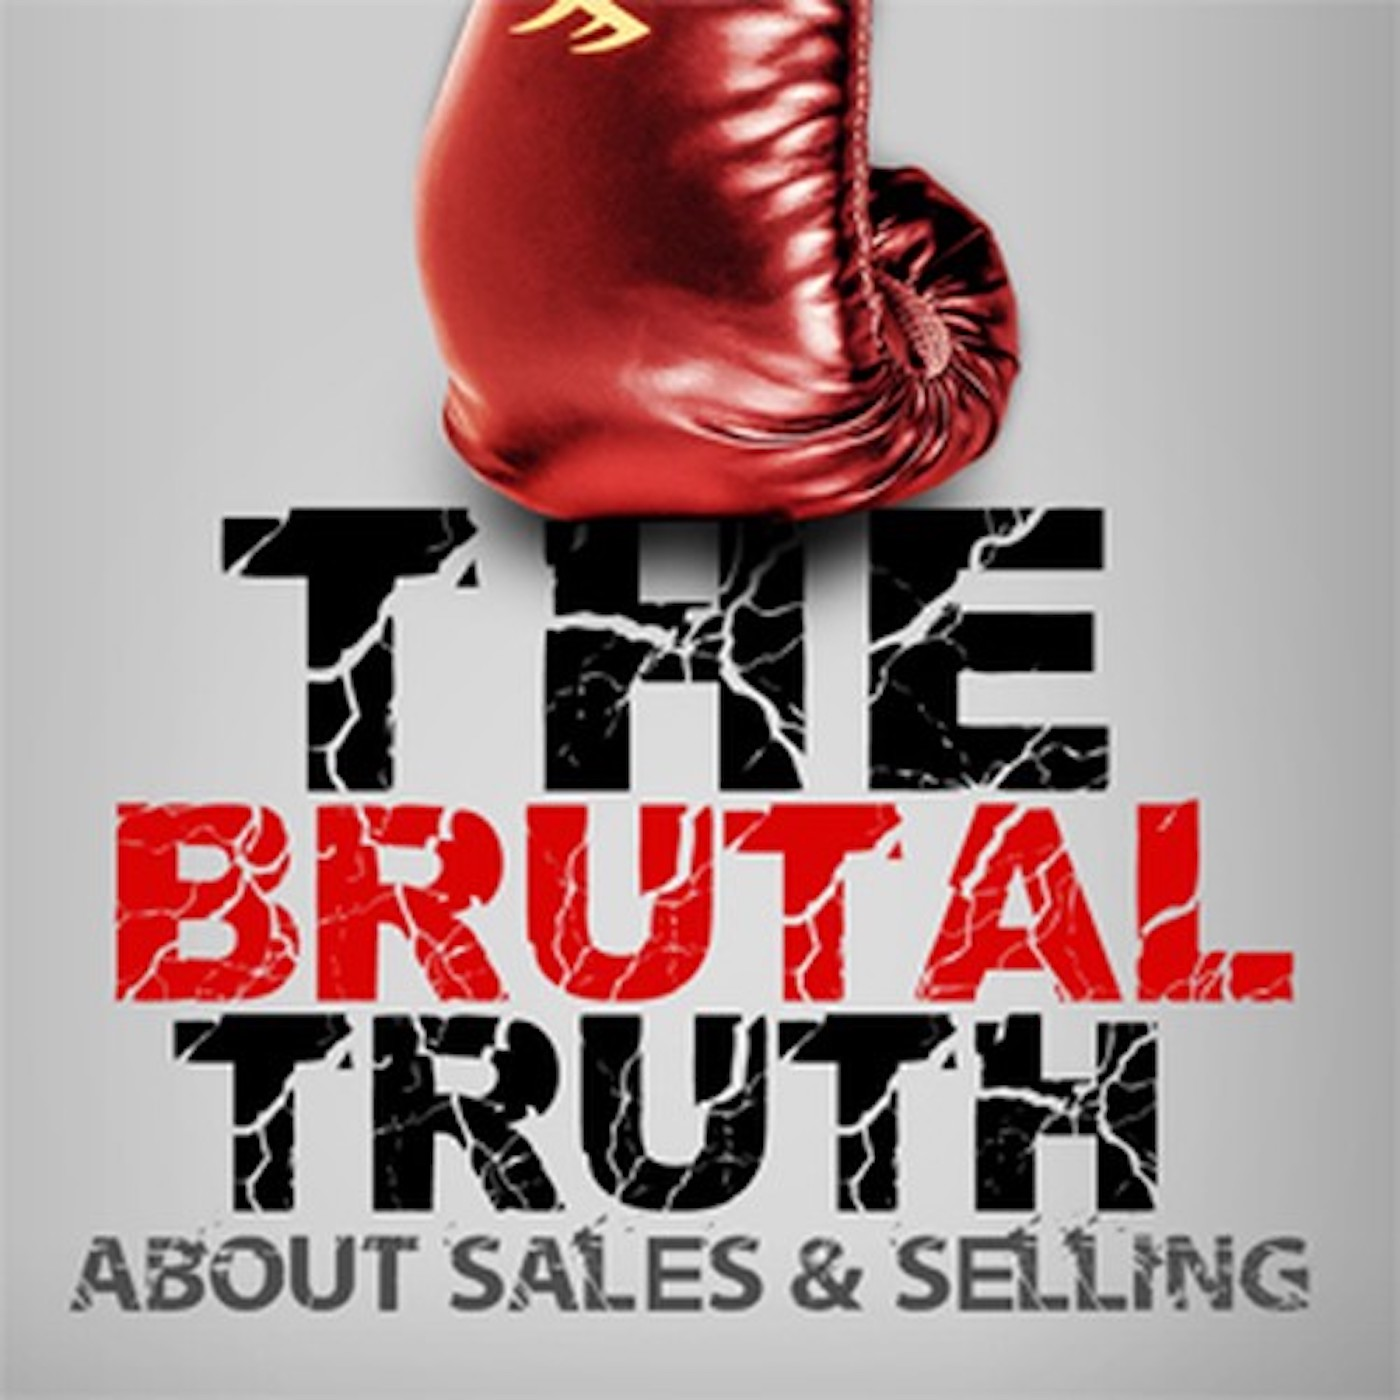 The Brutal Truth about B2B Sales & Selling - Business Hacker of B2B ENTERPRISE, SOCIAL & COLD CALLING